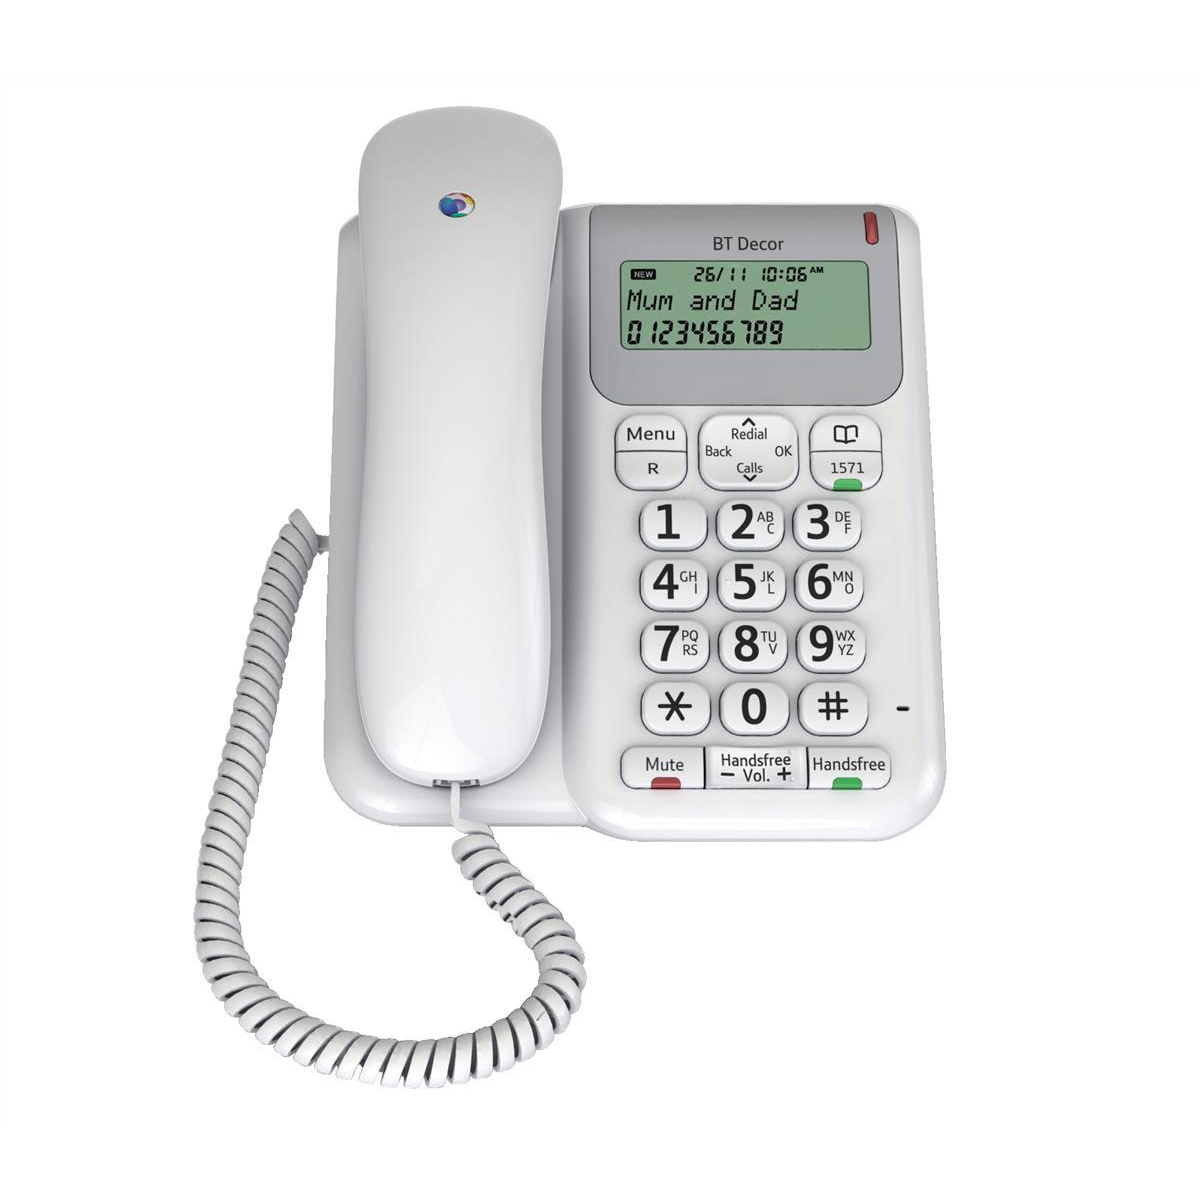 Phone handsets BT Decor 2200 Telephone 3-line LCD 50-entry Phonebook 30 Caller IDs Ref 061127